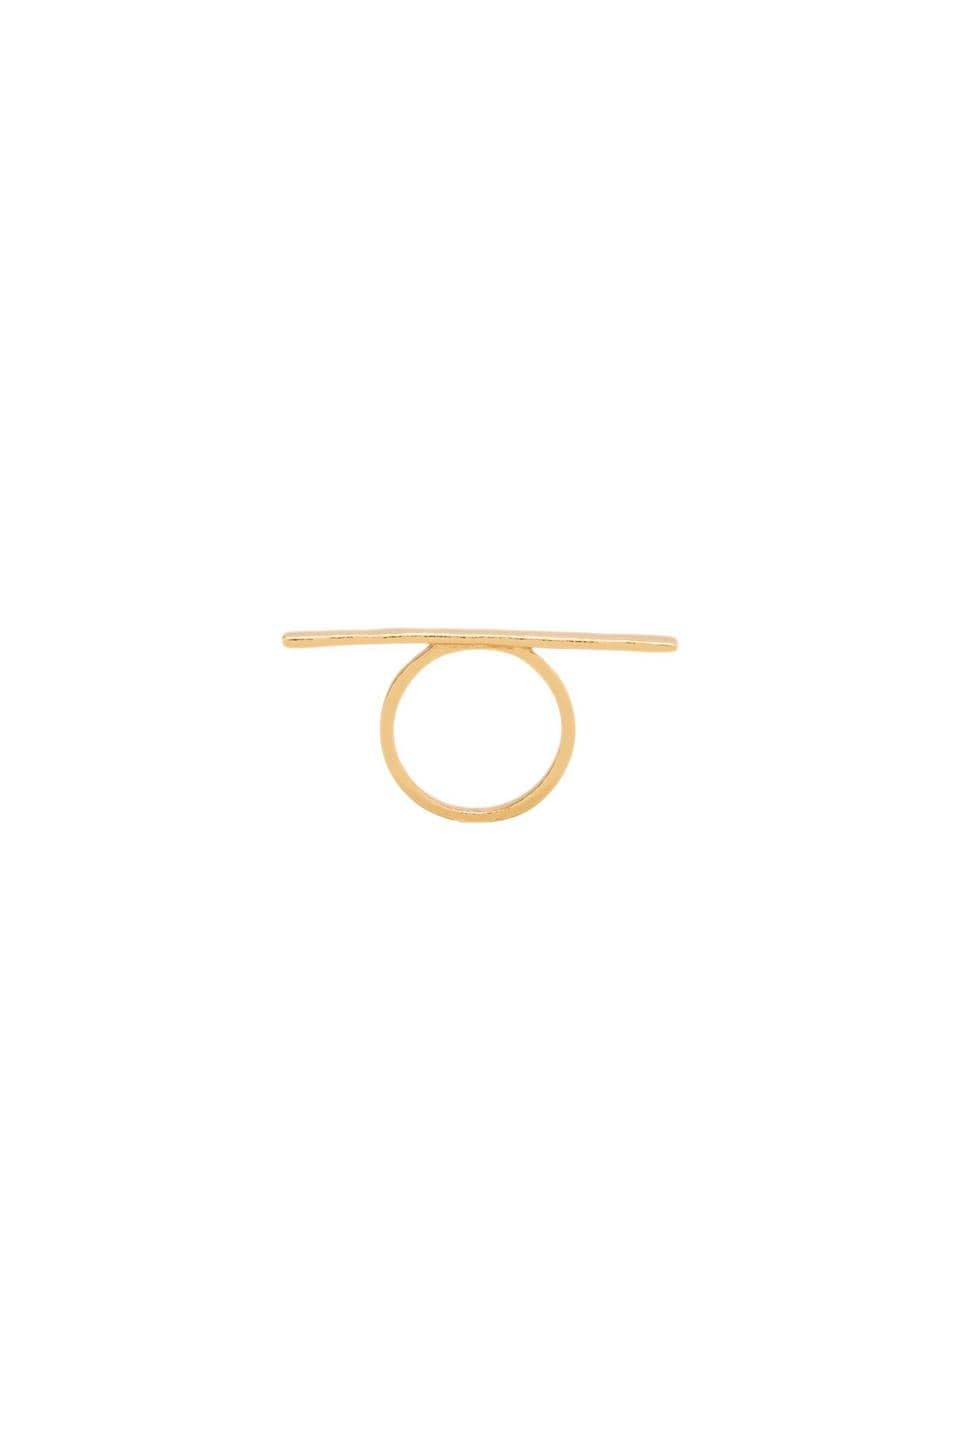 gorjana G Pressed Bar Ring in Gold